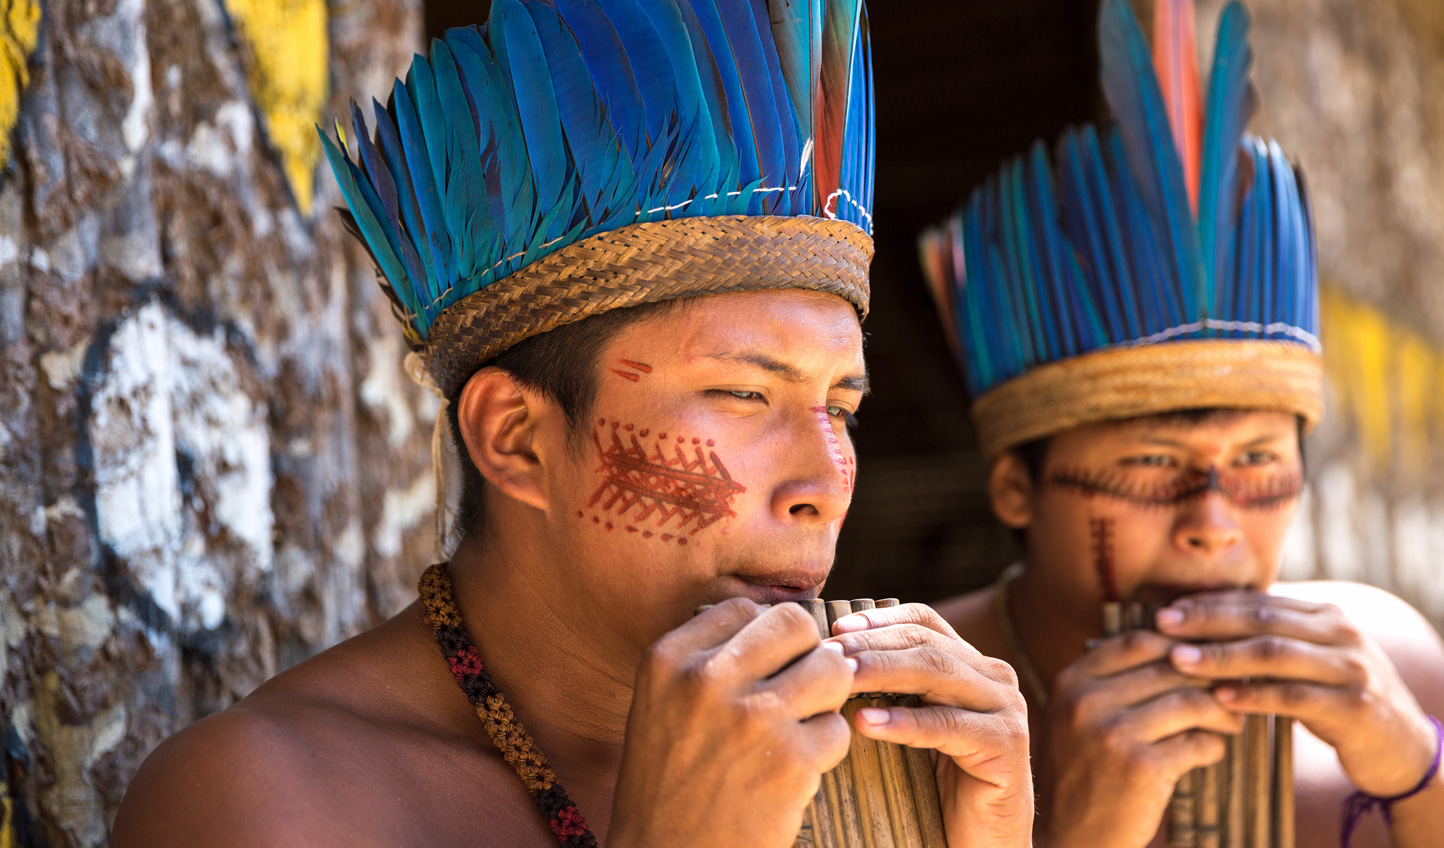 Get acquainted with local culture in rainforest villages.